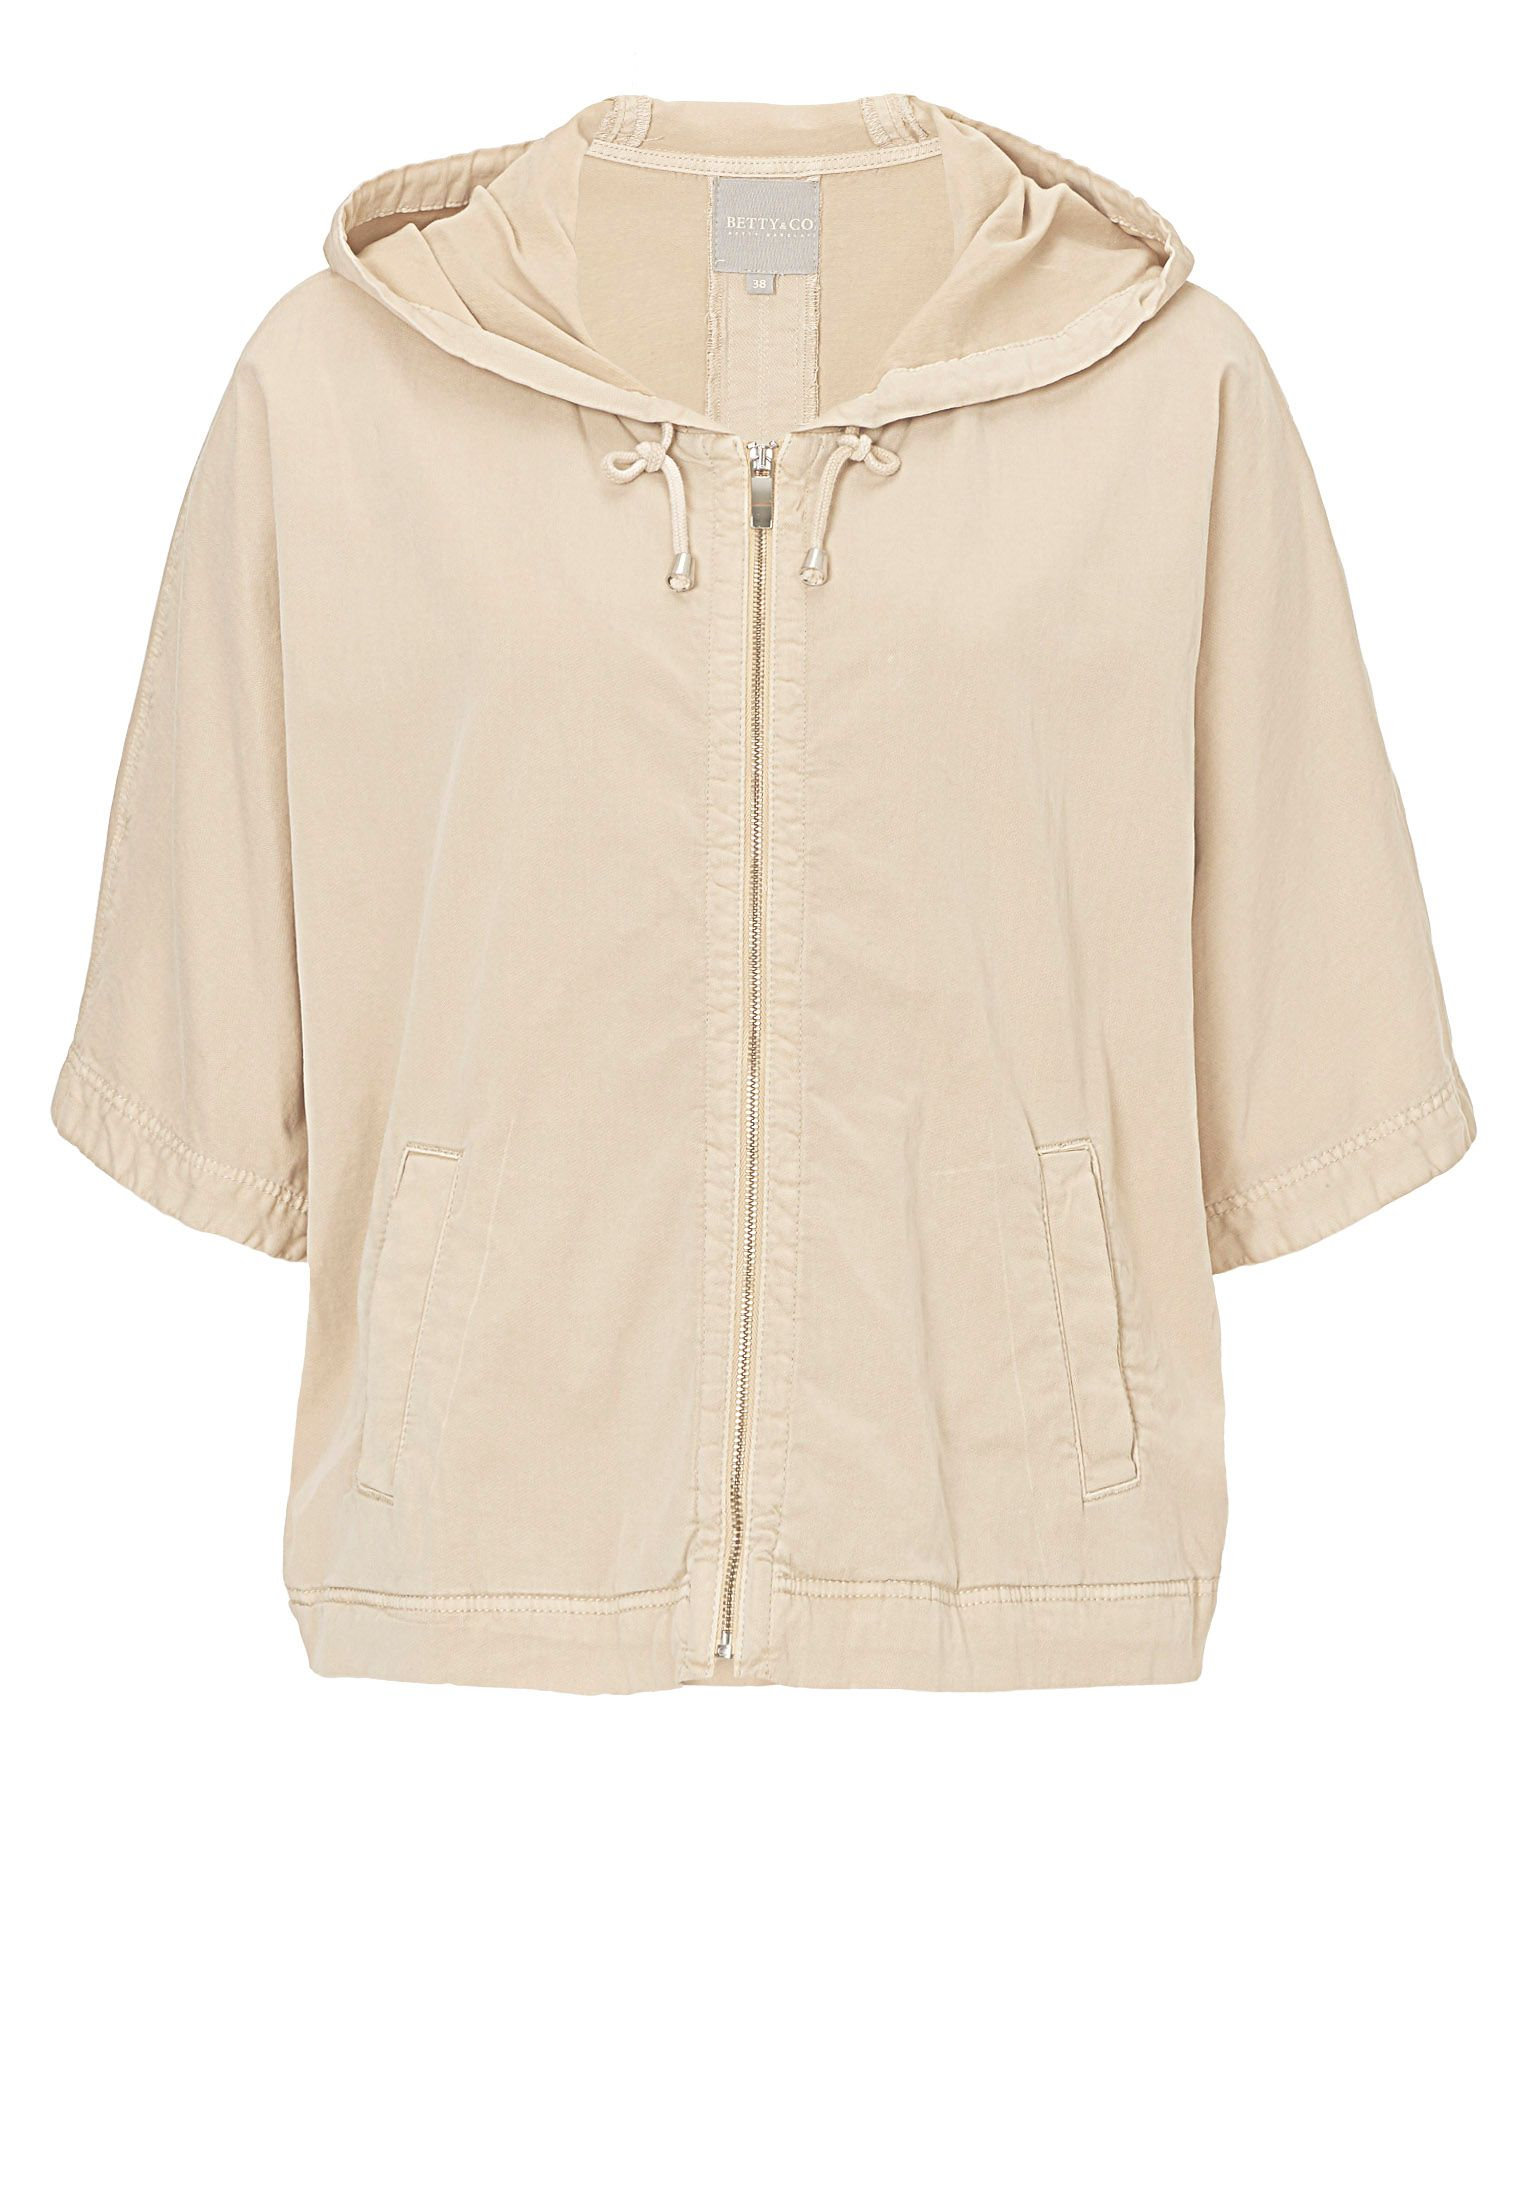 Betty & Co. Batwing Hooded Jacket, White